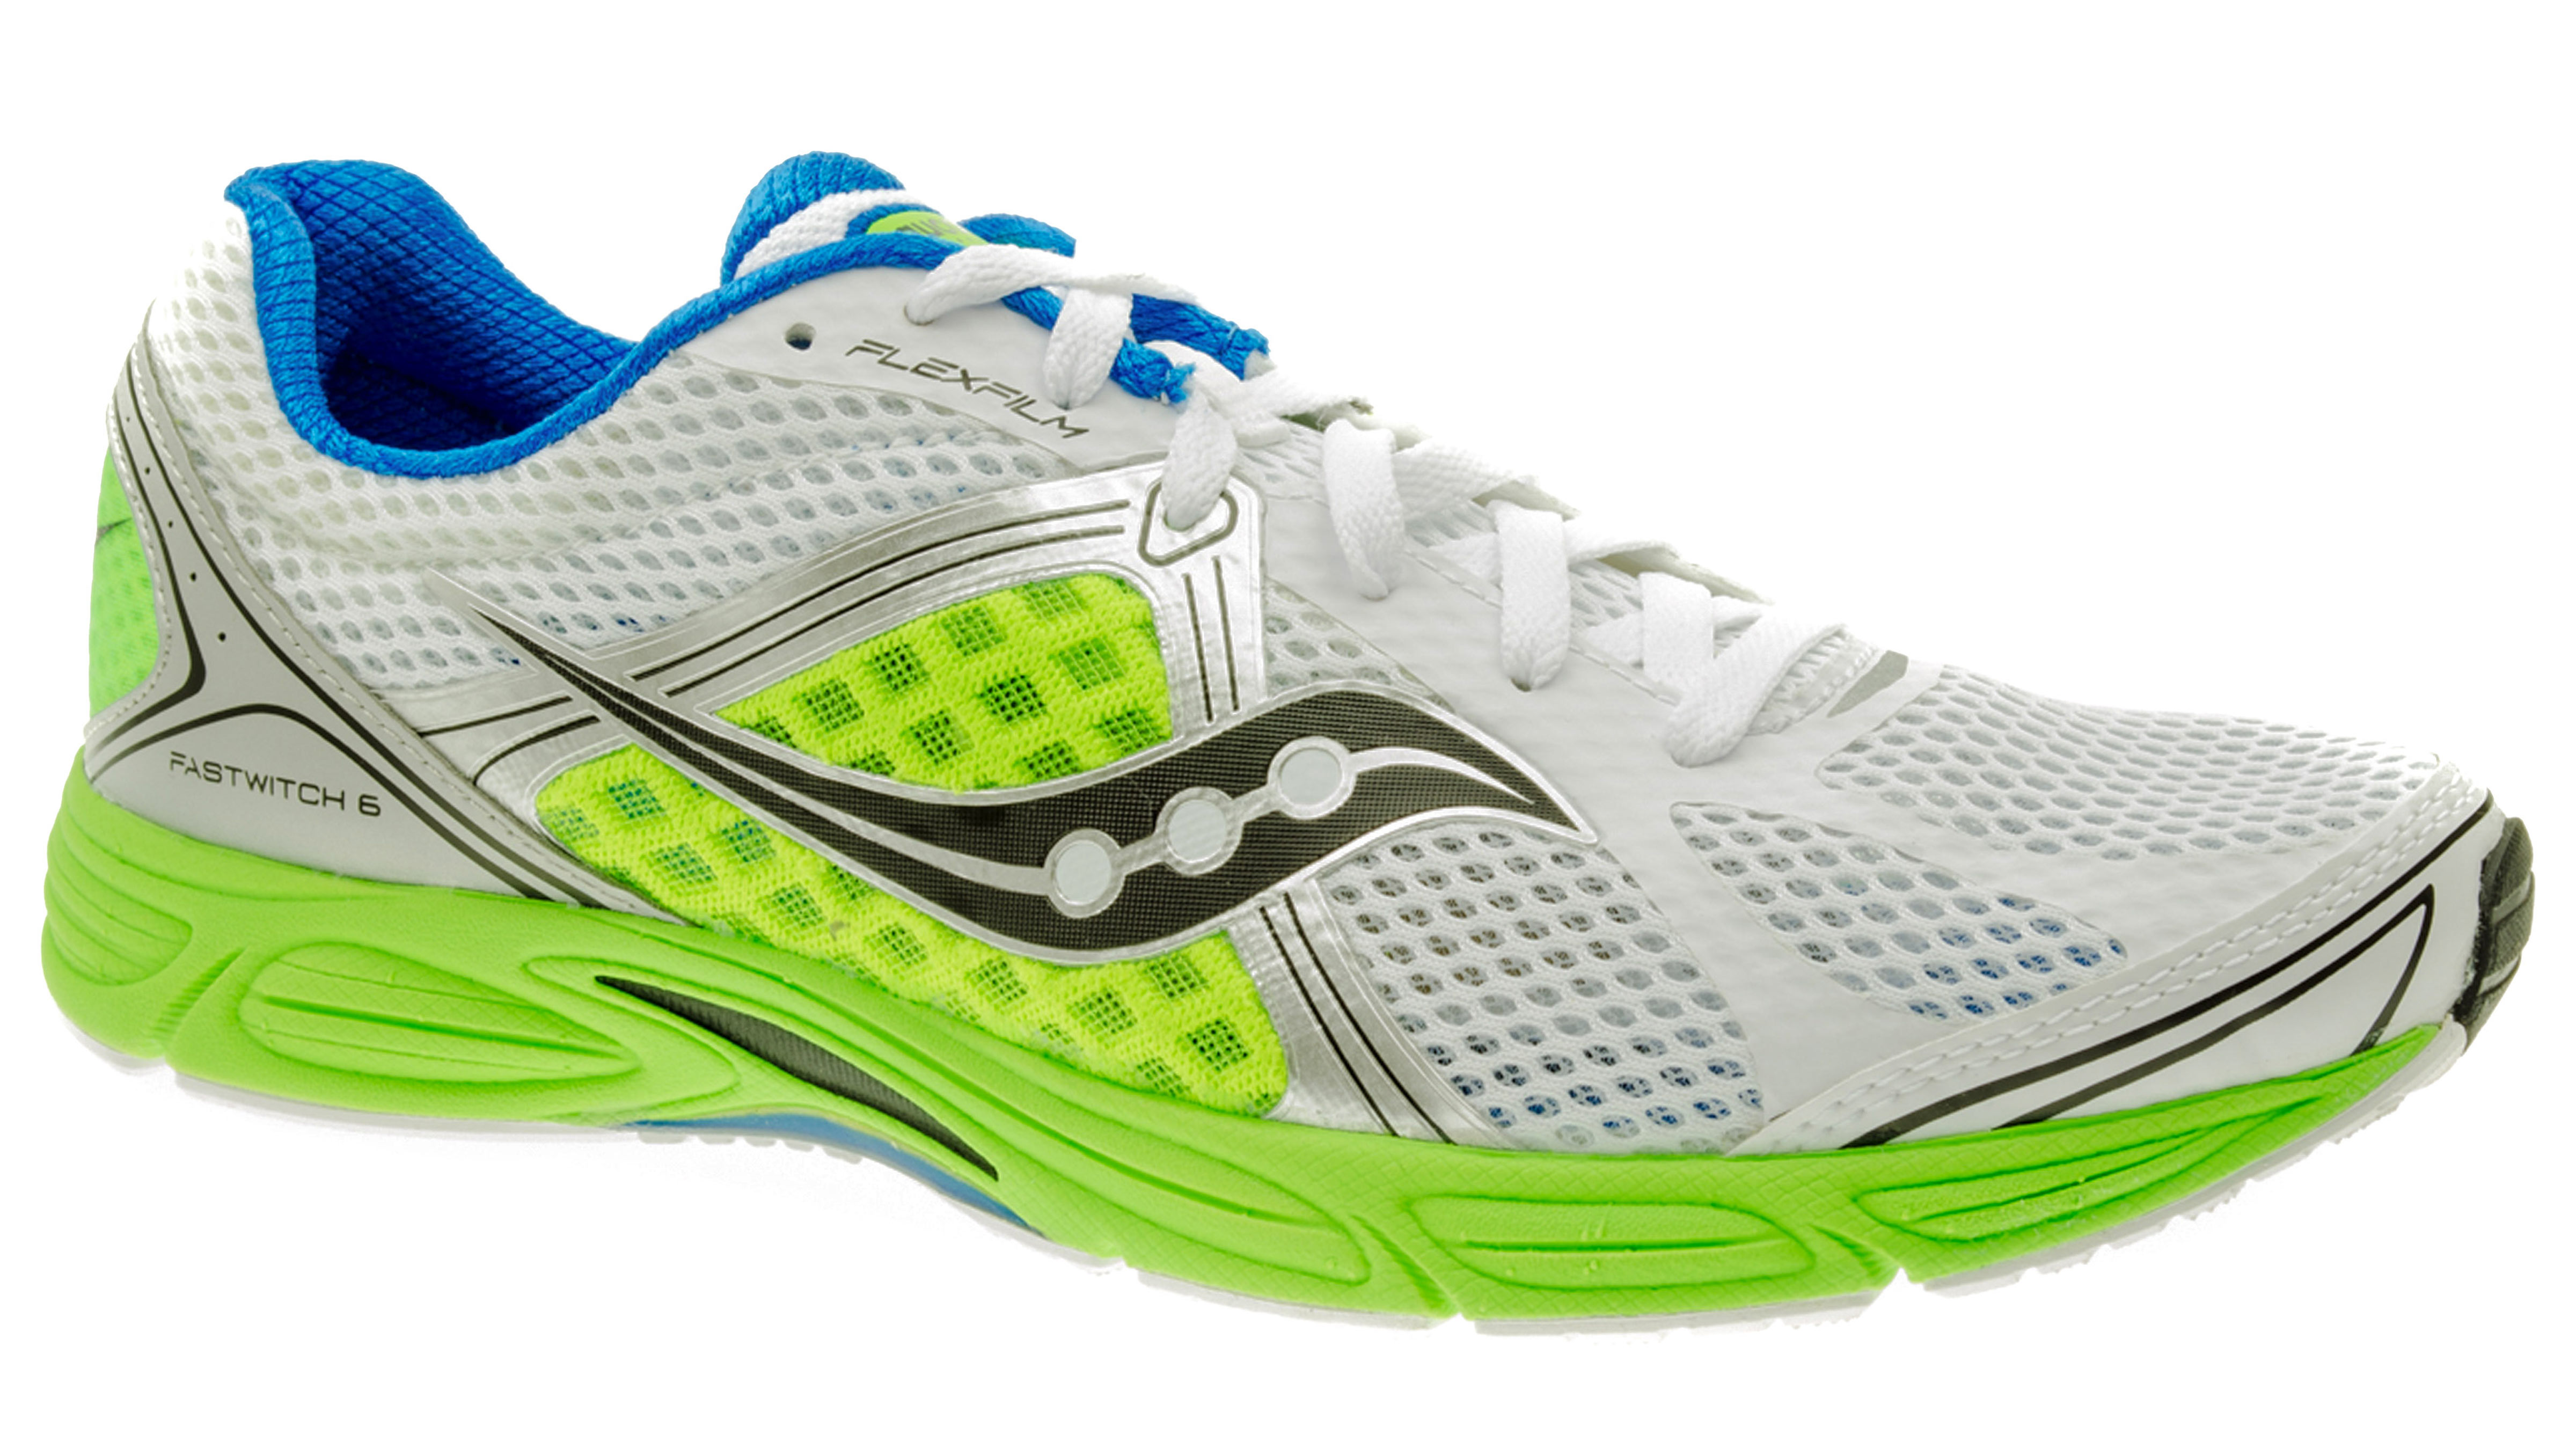 saucony fastwitch 6 mens